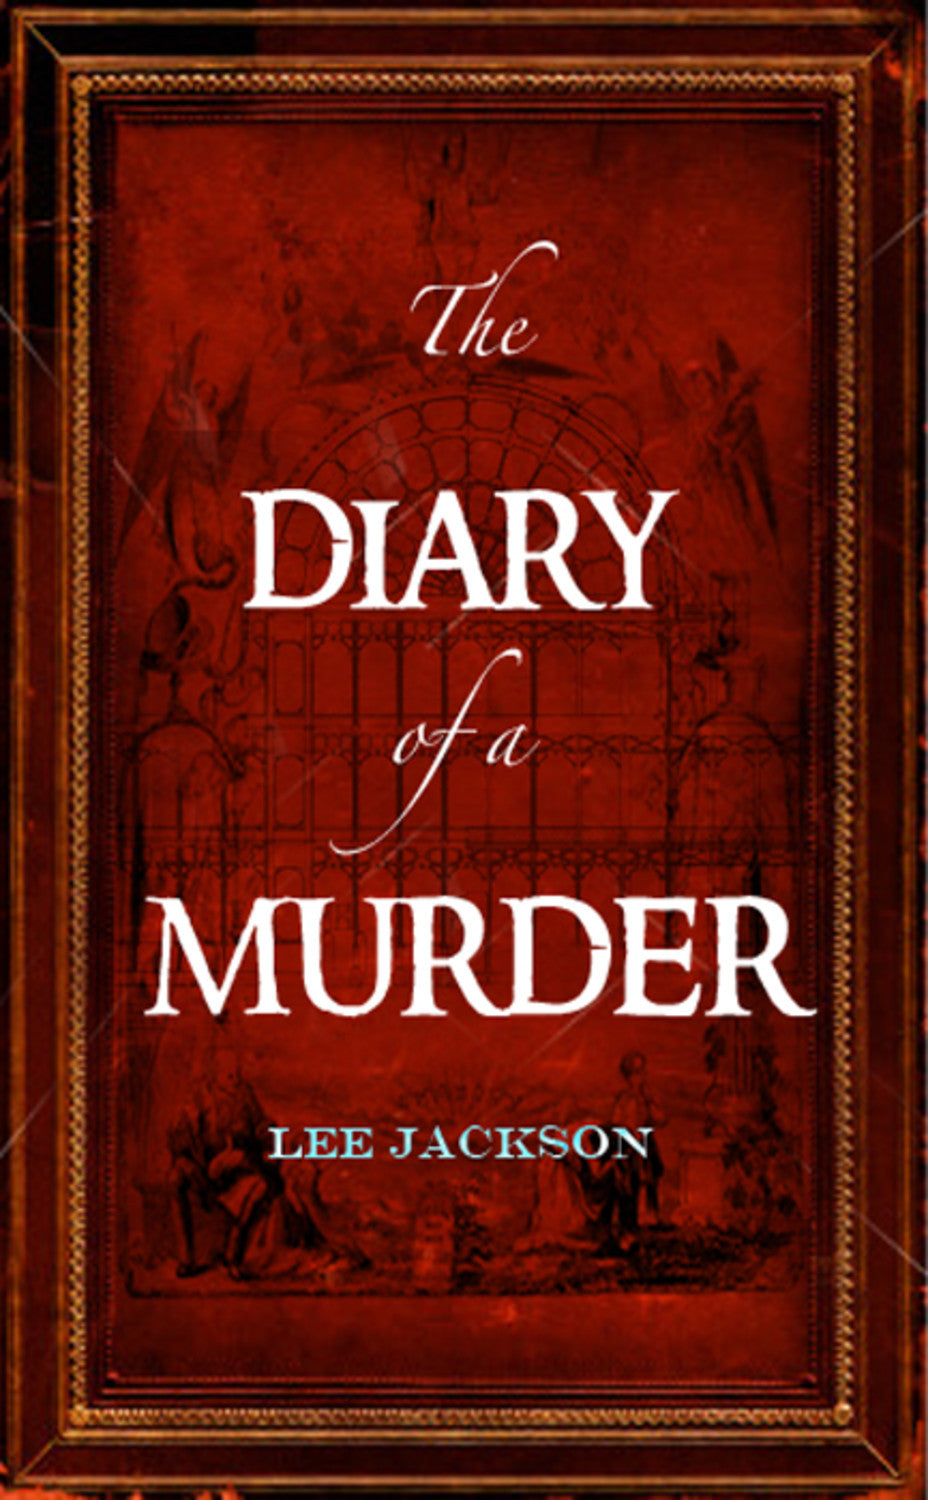 Diary of a Murder